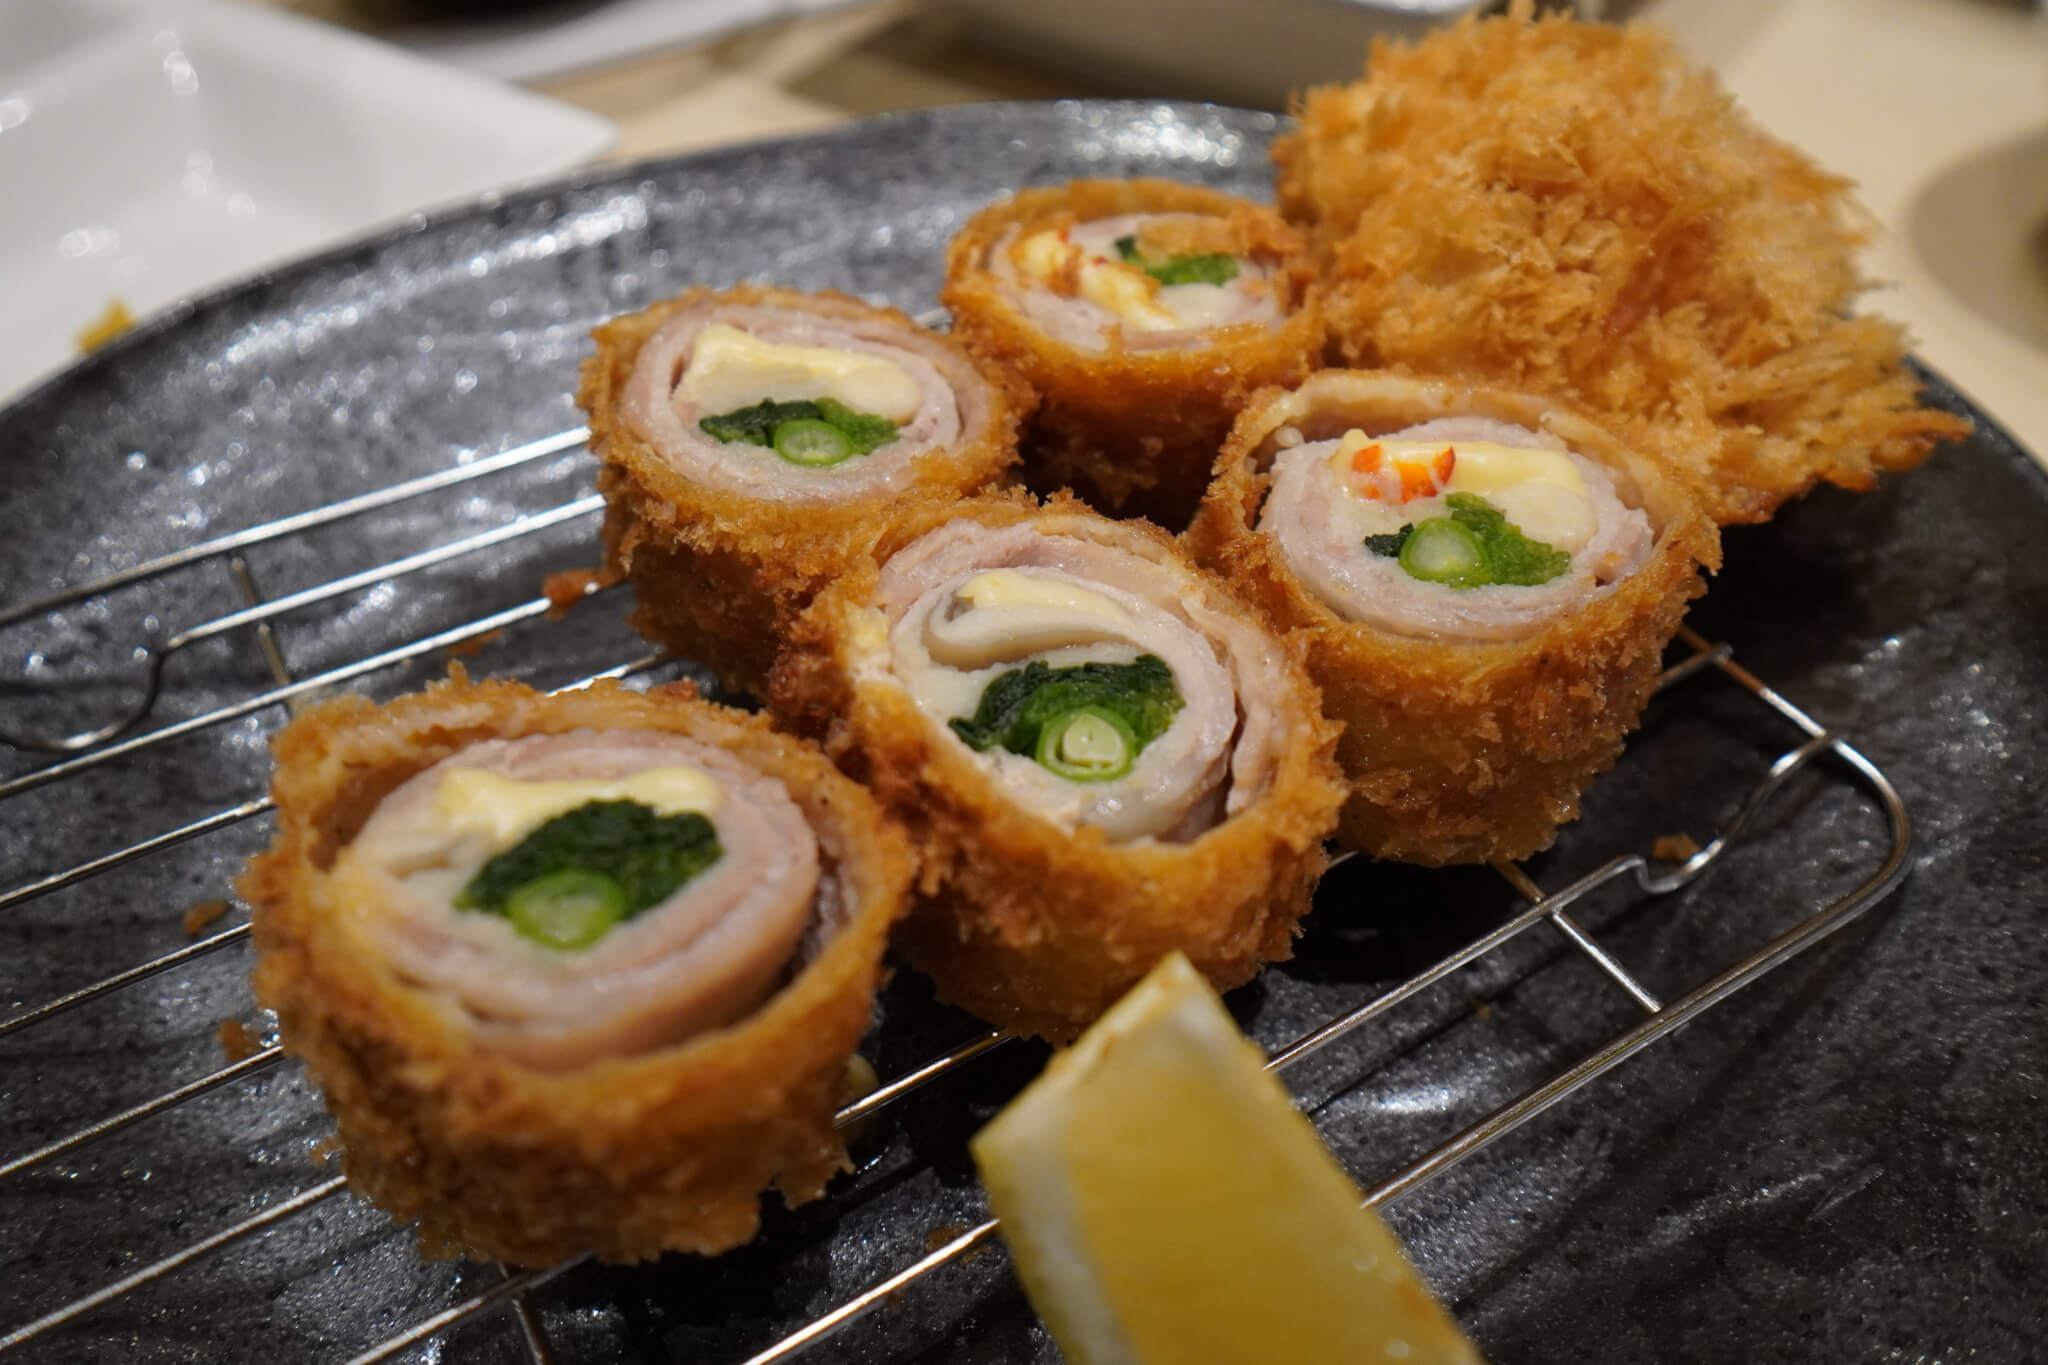 Rolled Pork & Vegetables Tonkatsu